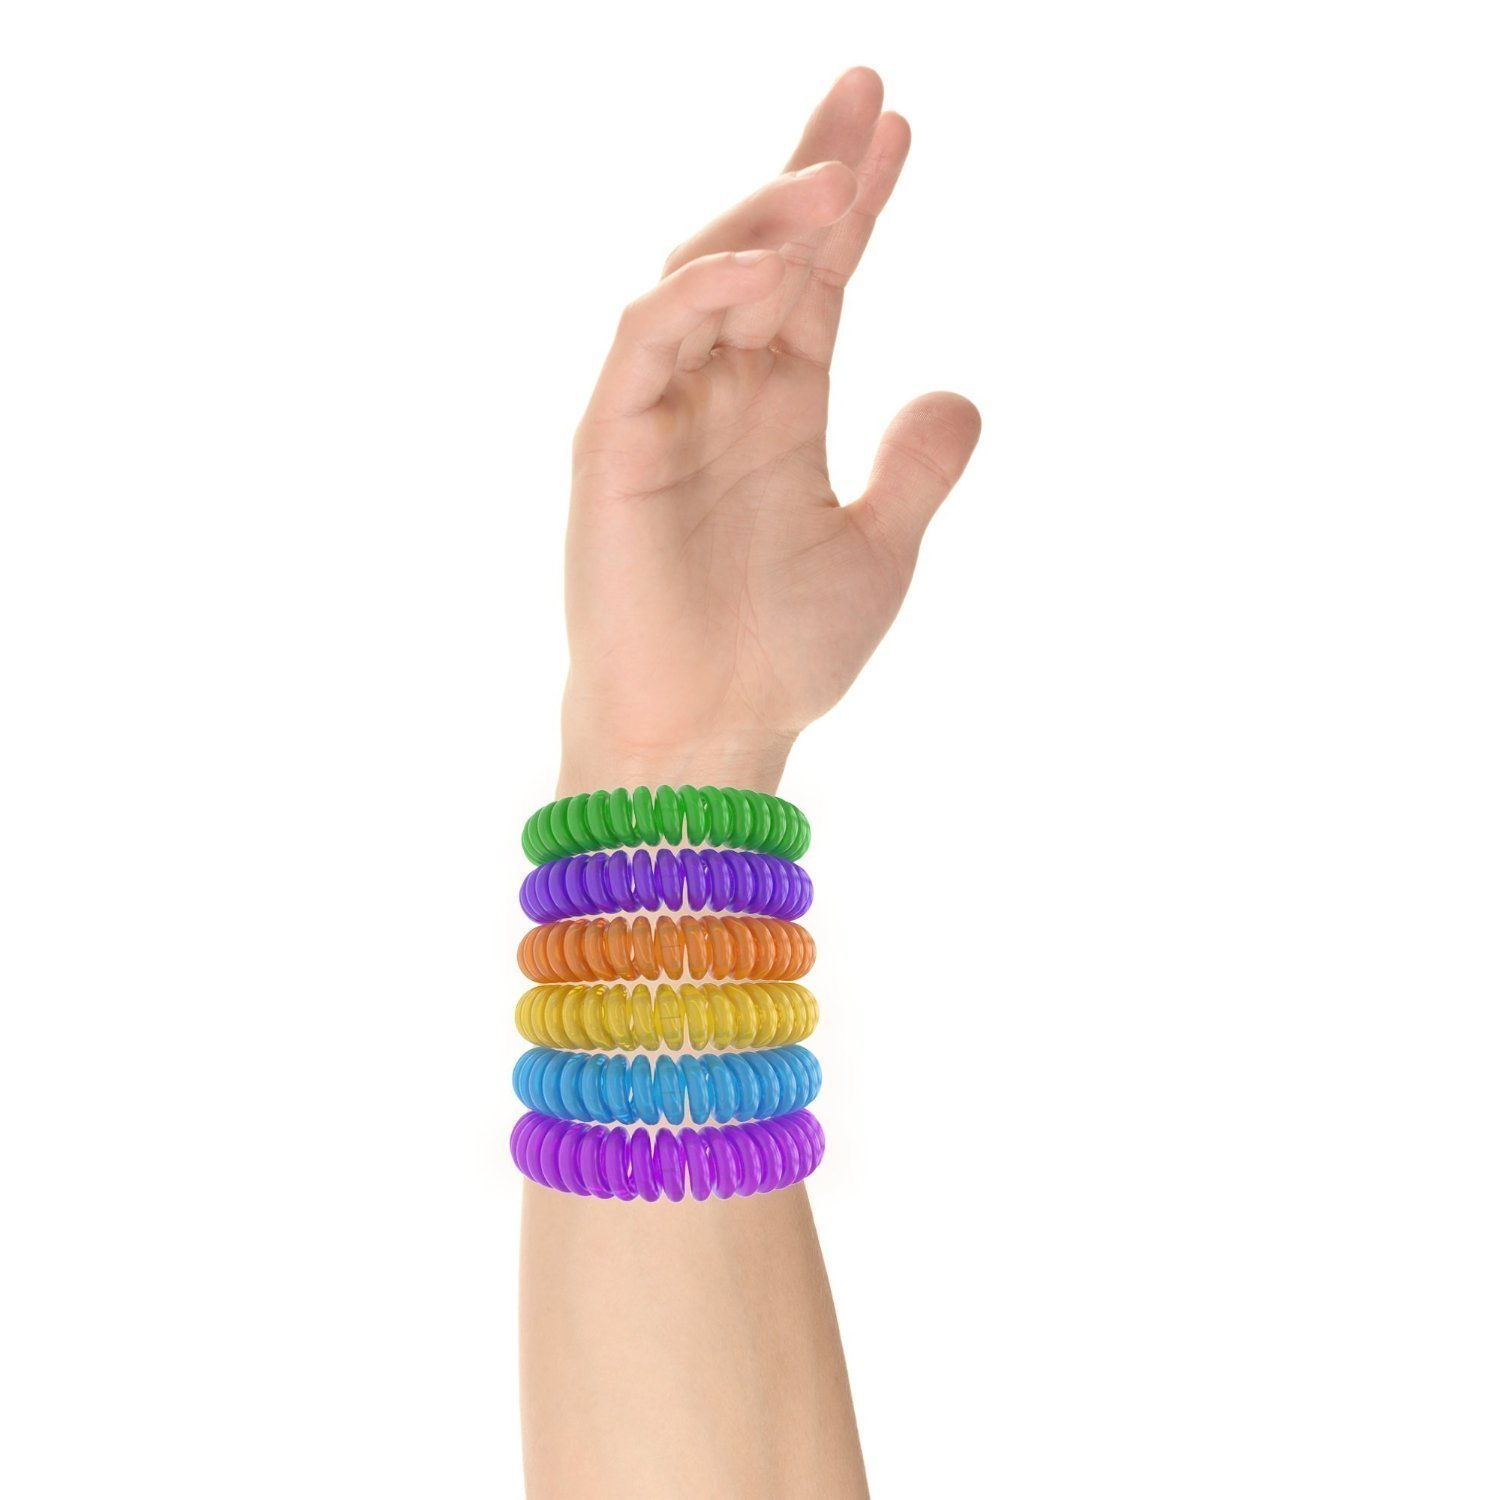 12 Pack Mosquito Repellent Bracelet Band - [320Hrs of Protection] Pest Control Insect Bug Repeller - Natural Indoor/Outdoor Insects - Best Products with NO Spray for Men, Women, Kids, Children